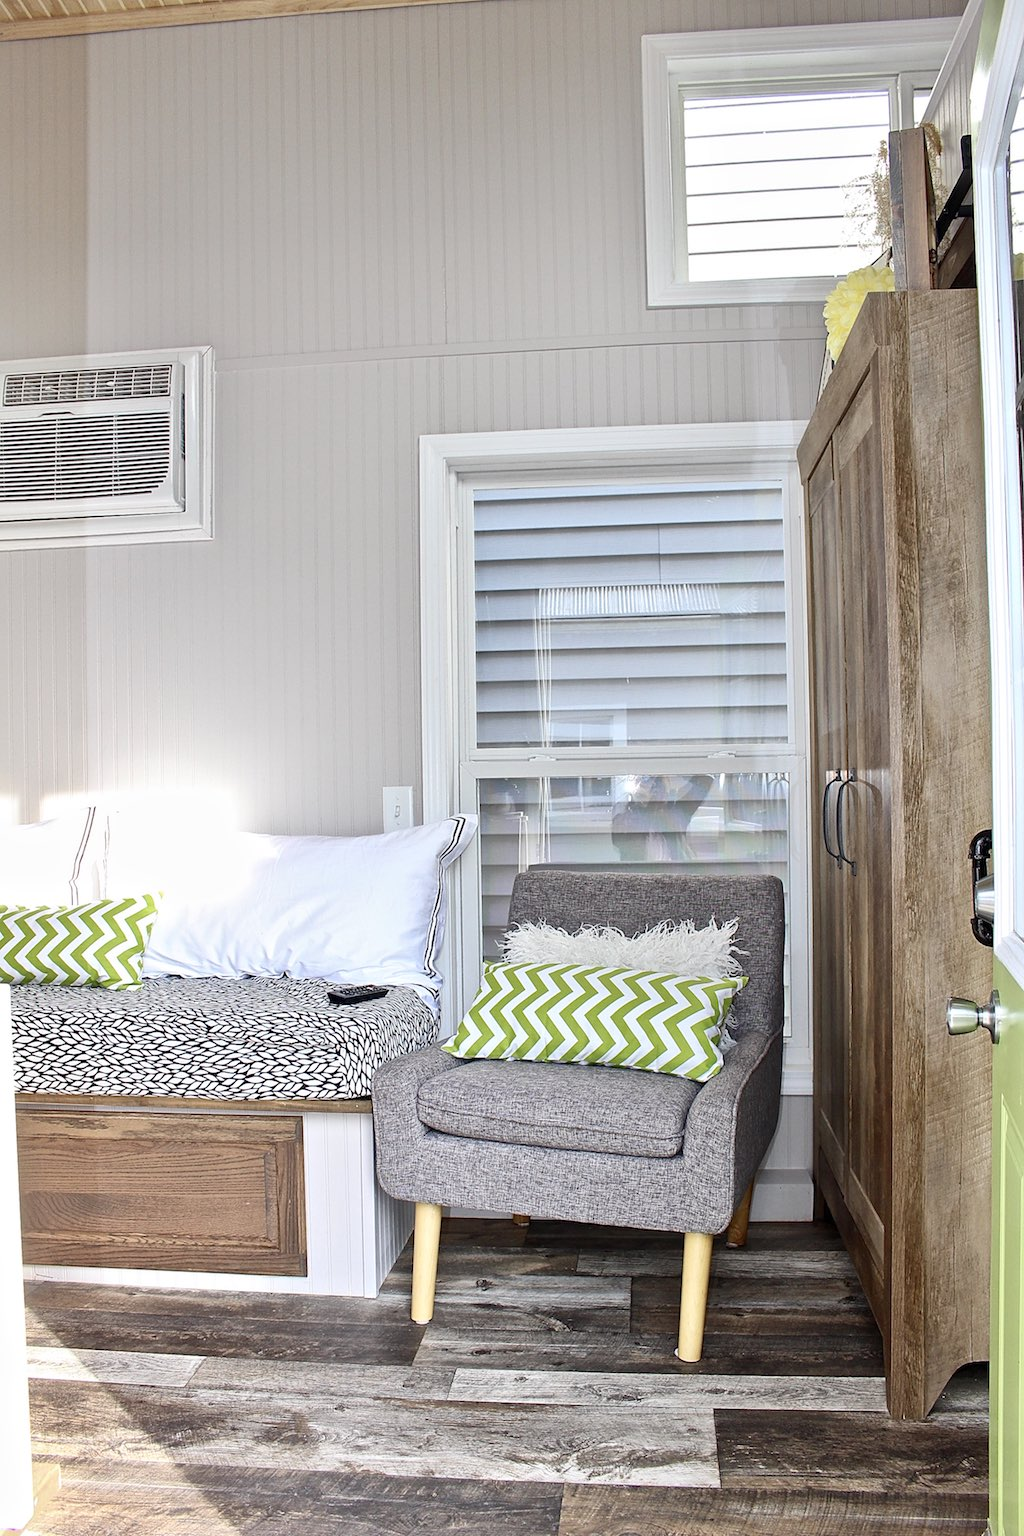 chic-shack-lime-green-mini-mansions-tiny-homes-11